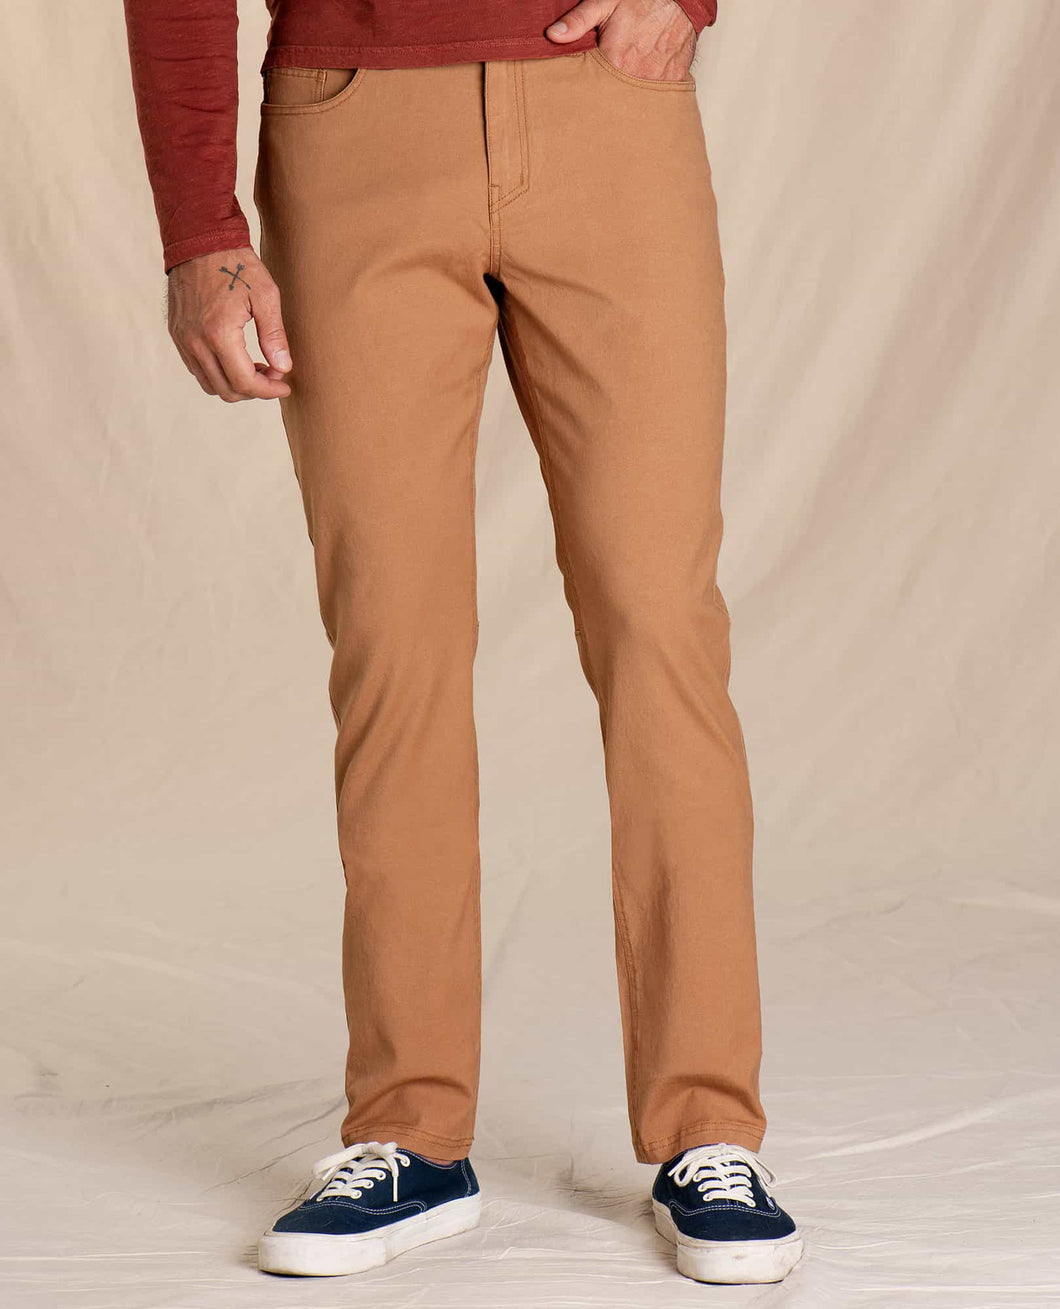 Toad & Co. Woodsen 5 Pocket Lean Pant - TABAC